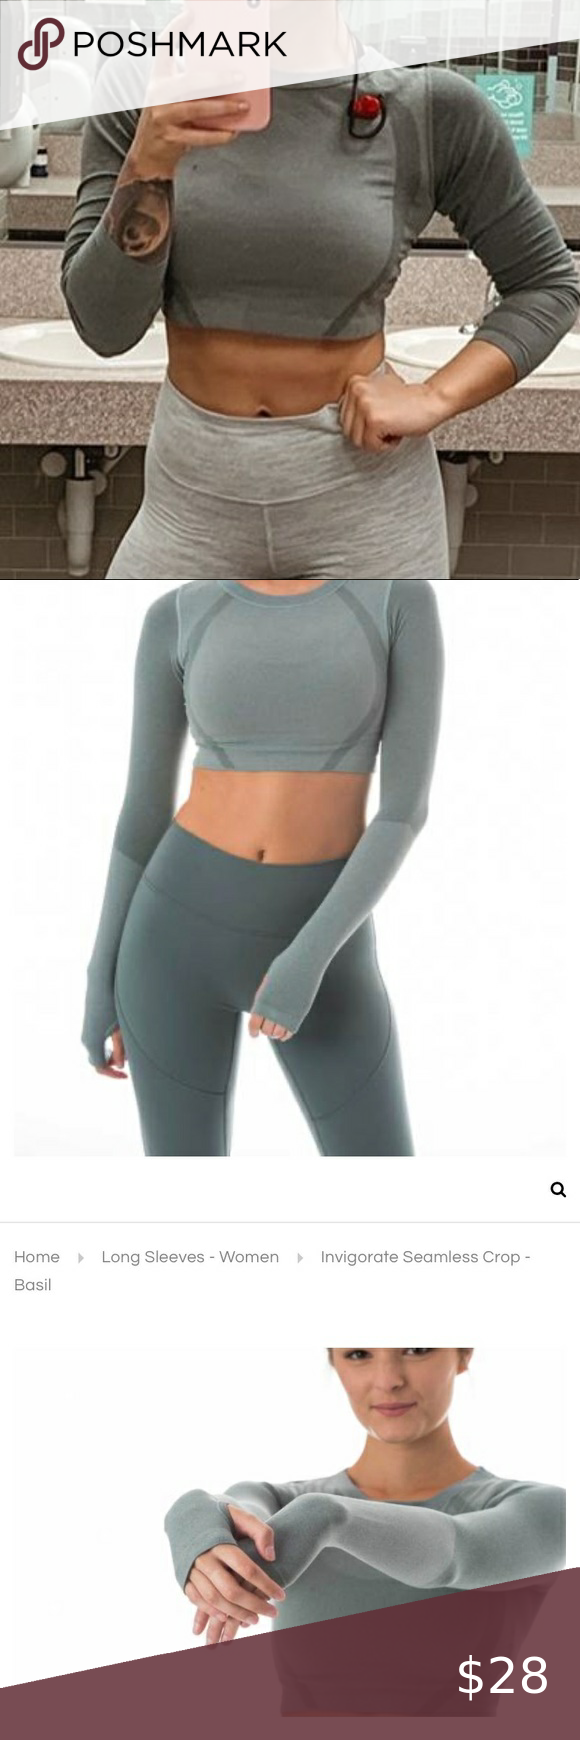 Ptula Long Sleeve Crop In 2020 Clothes Design Sleeves Long Sleeve Check out our fuzzy crop top selection for the very best in unique or custom, handmade pieces from our crop tops shops. pinterest